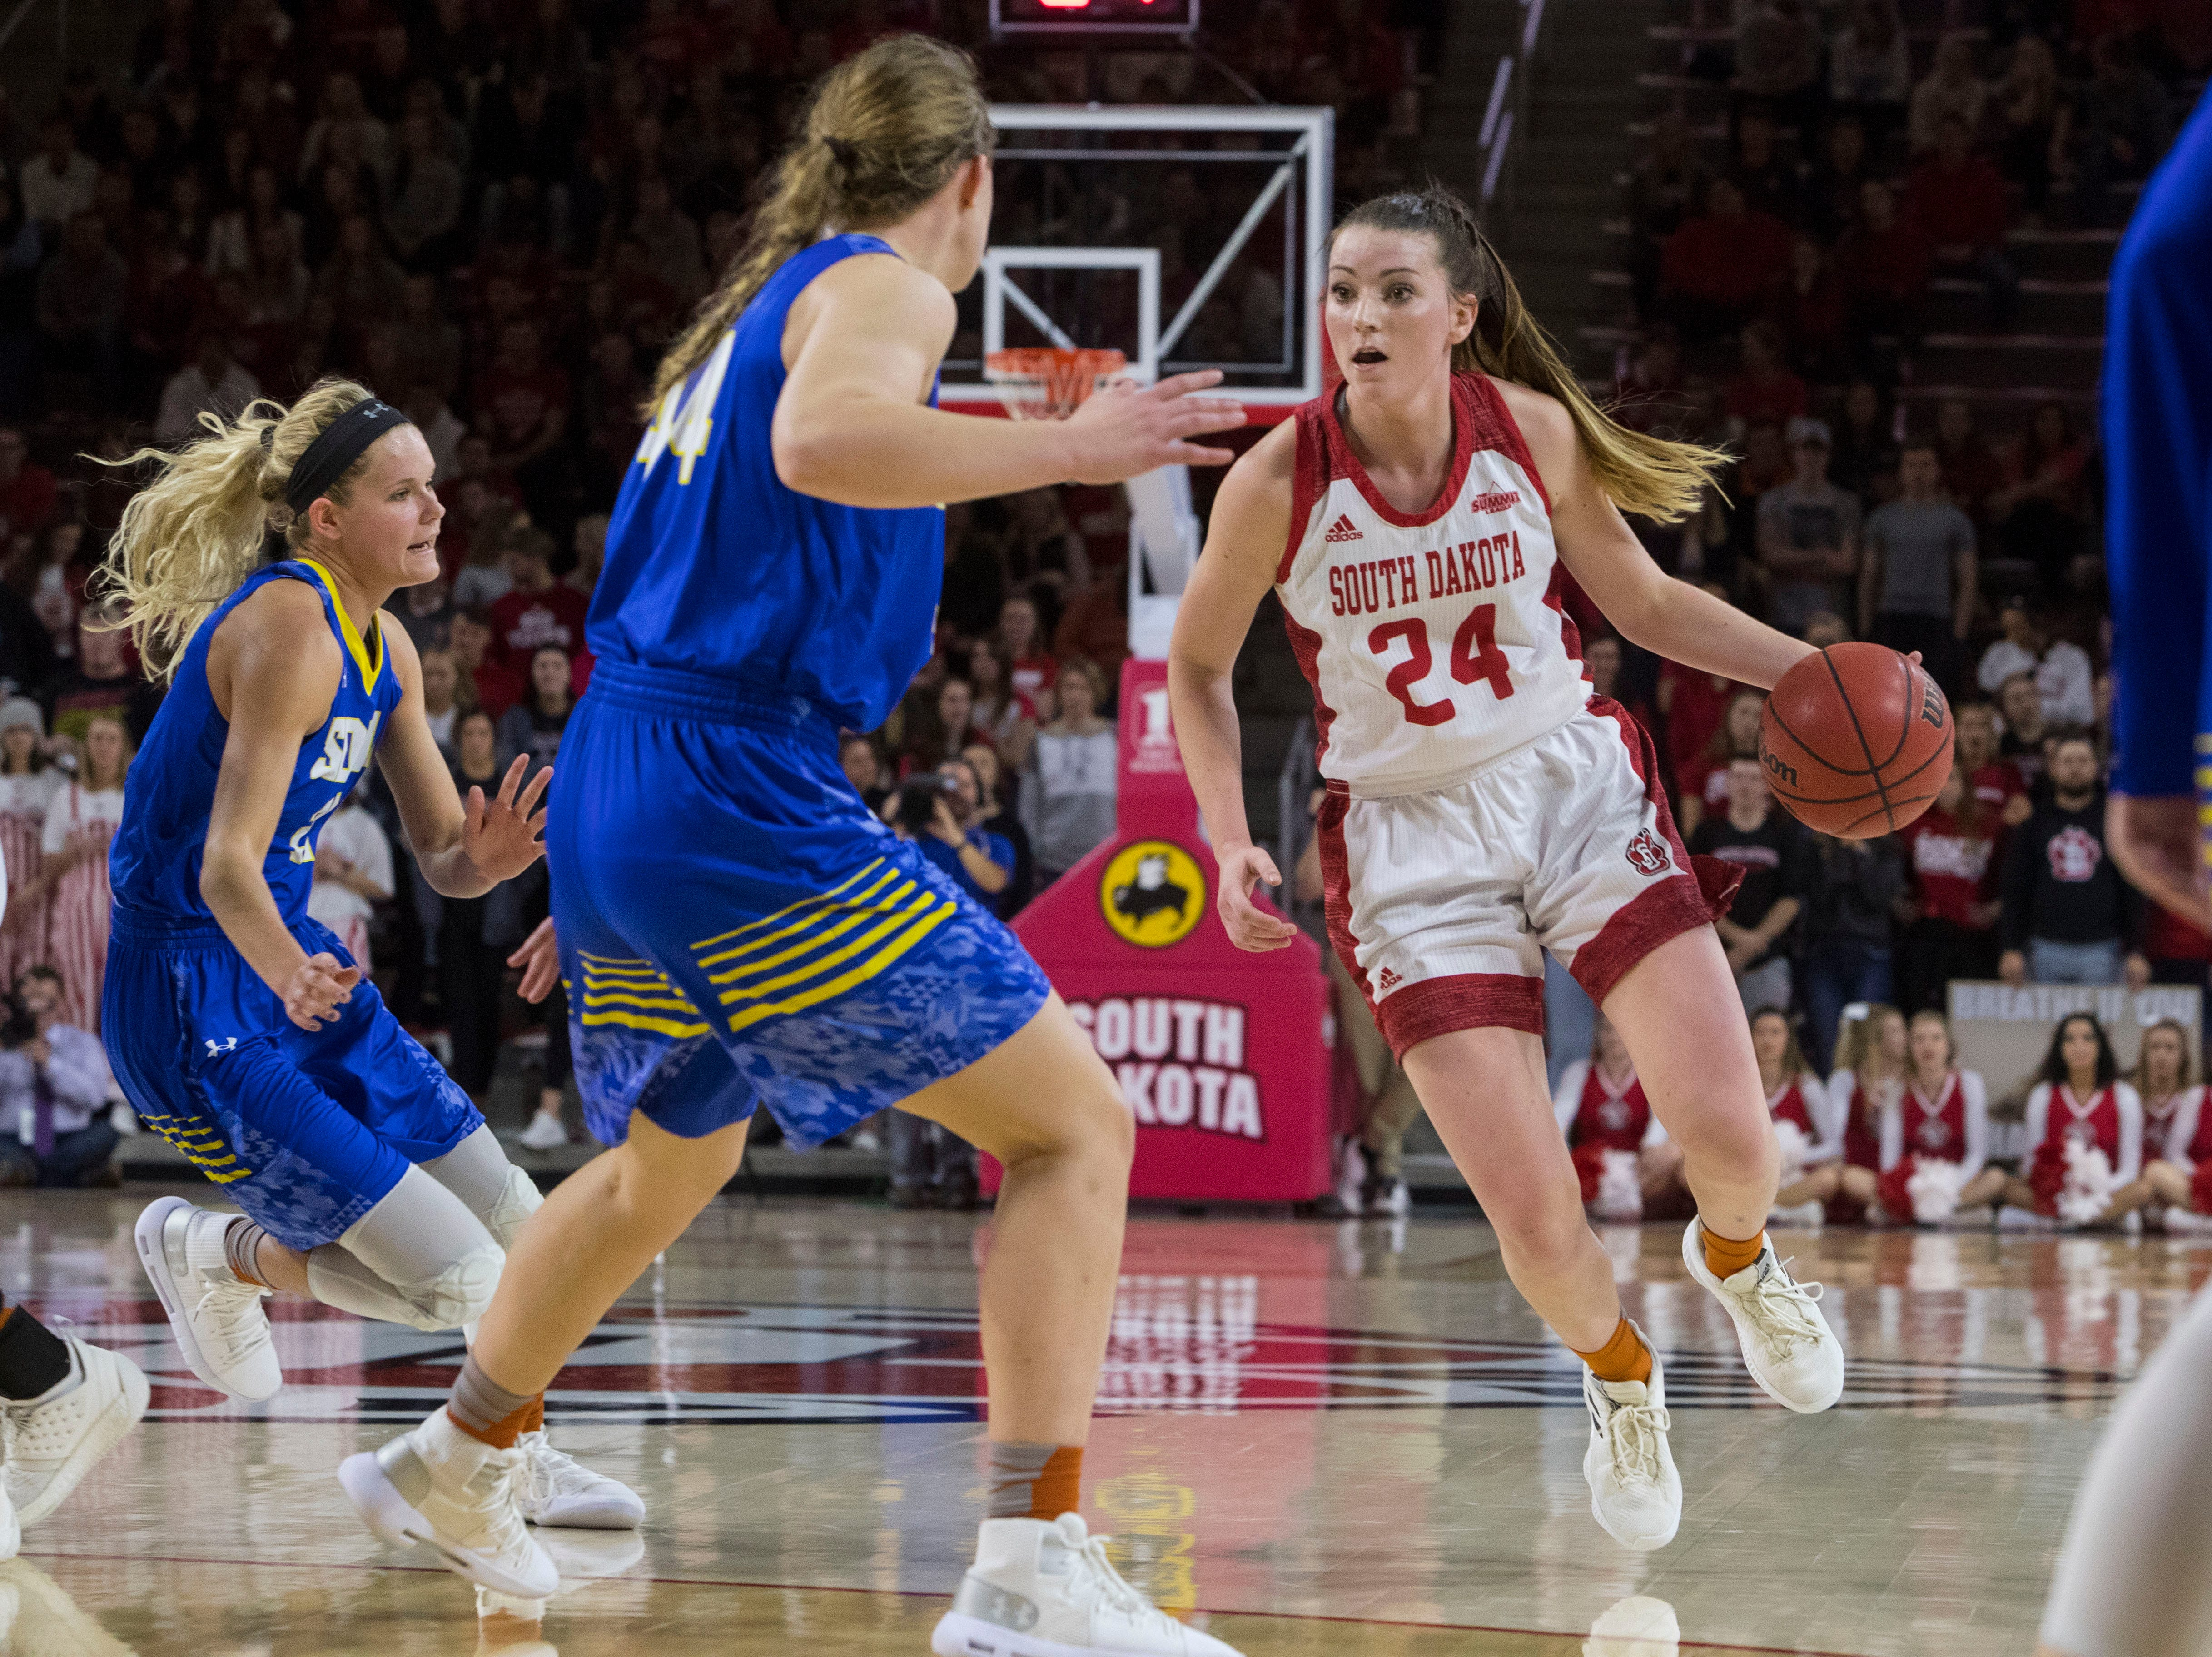 USD's Ciara Duffy (24) dribbles the ball during a game against SDSU, Sunday, Jan. 6, 2019 in Vermillion, S.D.